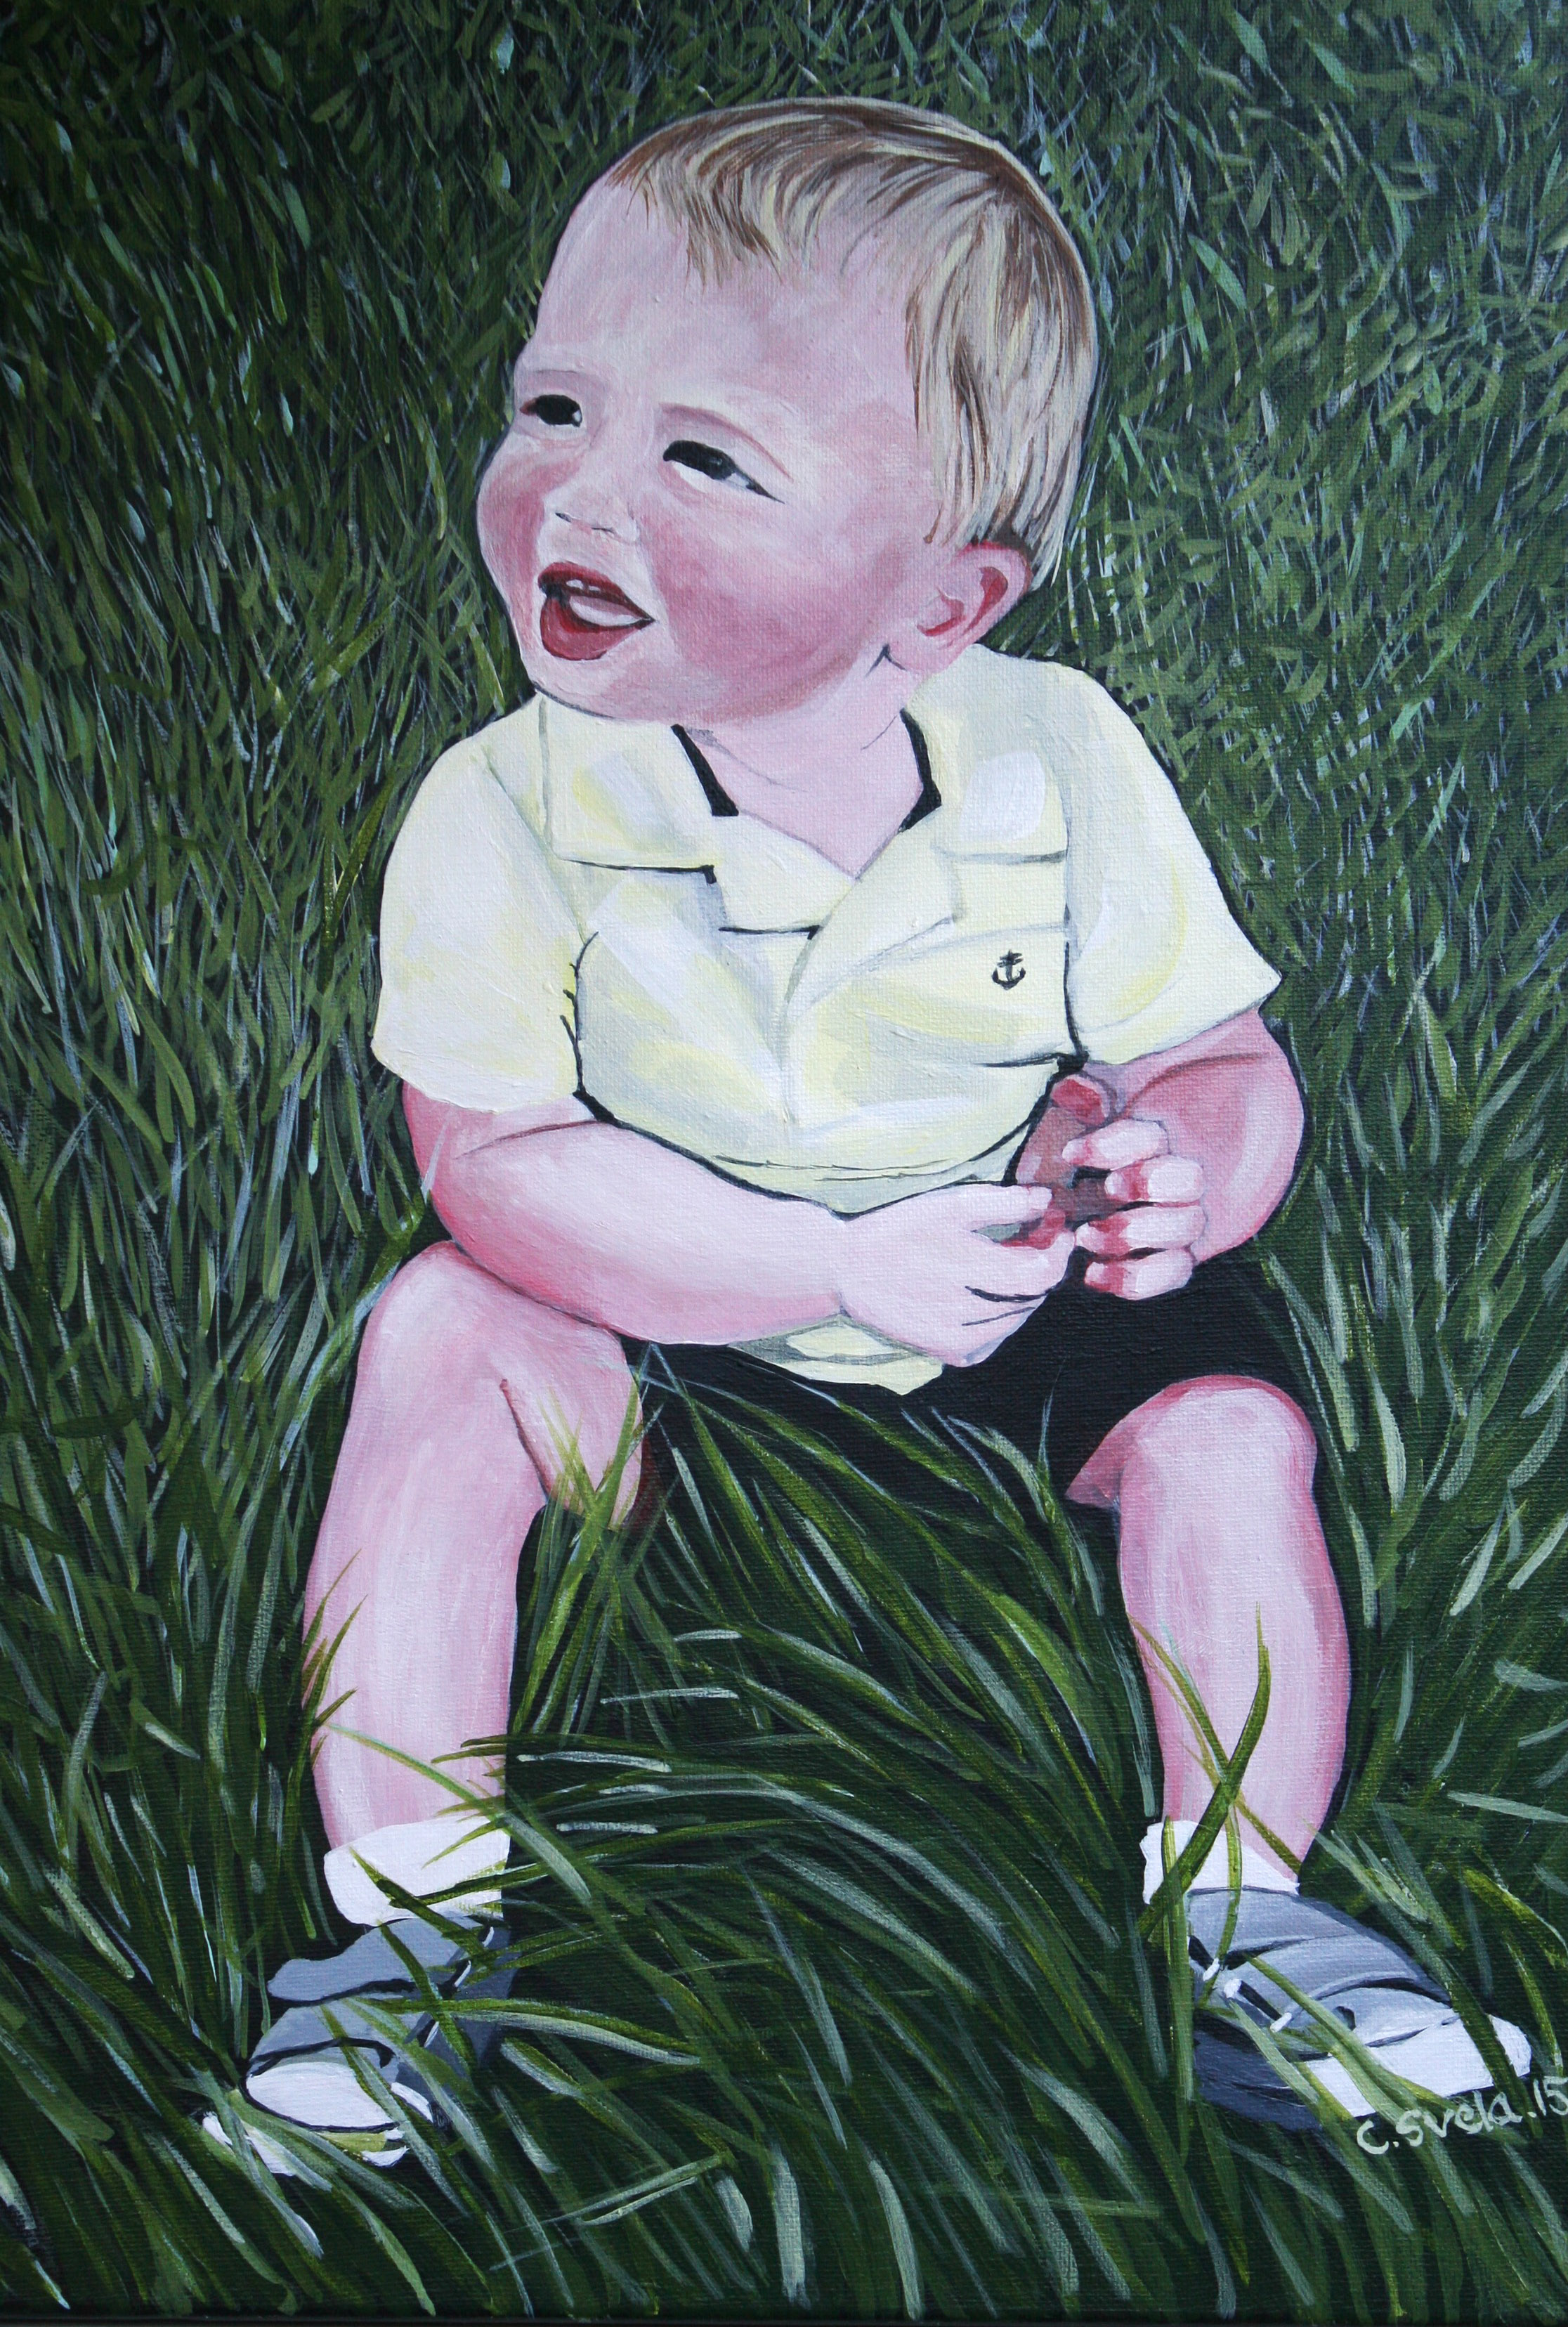 Little boy in the grass